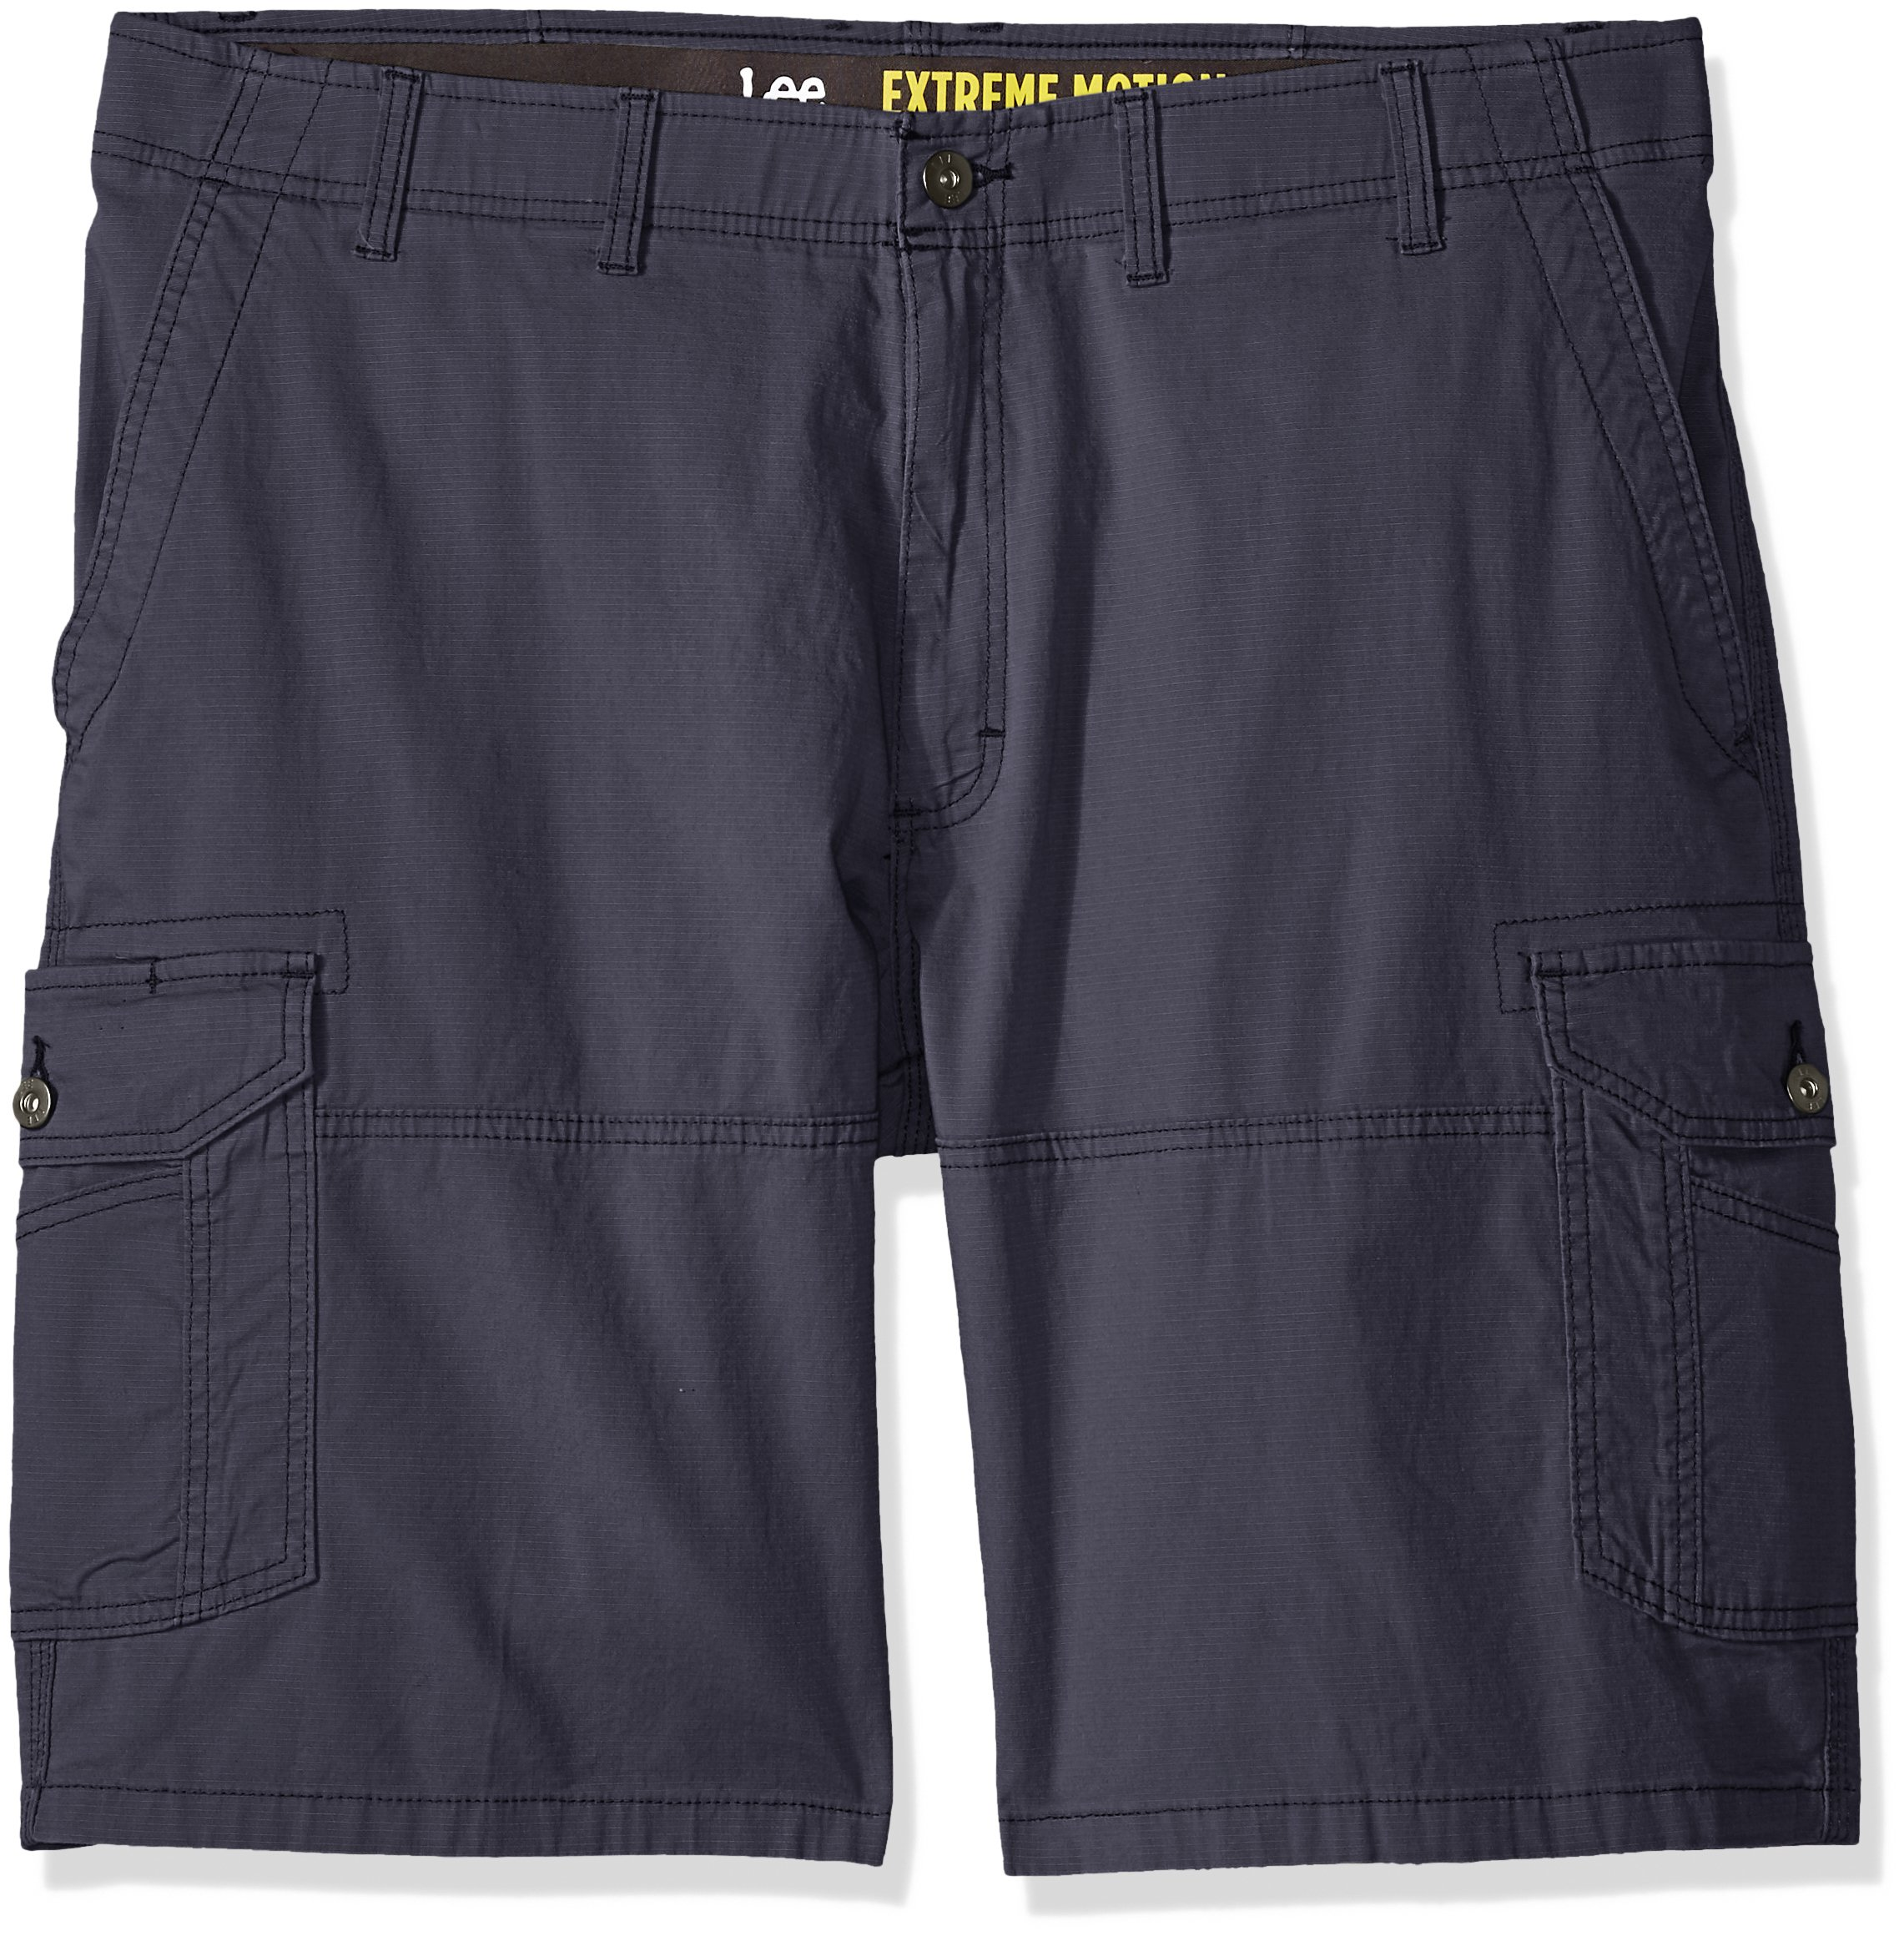 LEE Men's Big and Tall Extreme Motion Swope Cargo Short, Varsity, 46